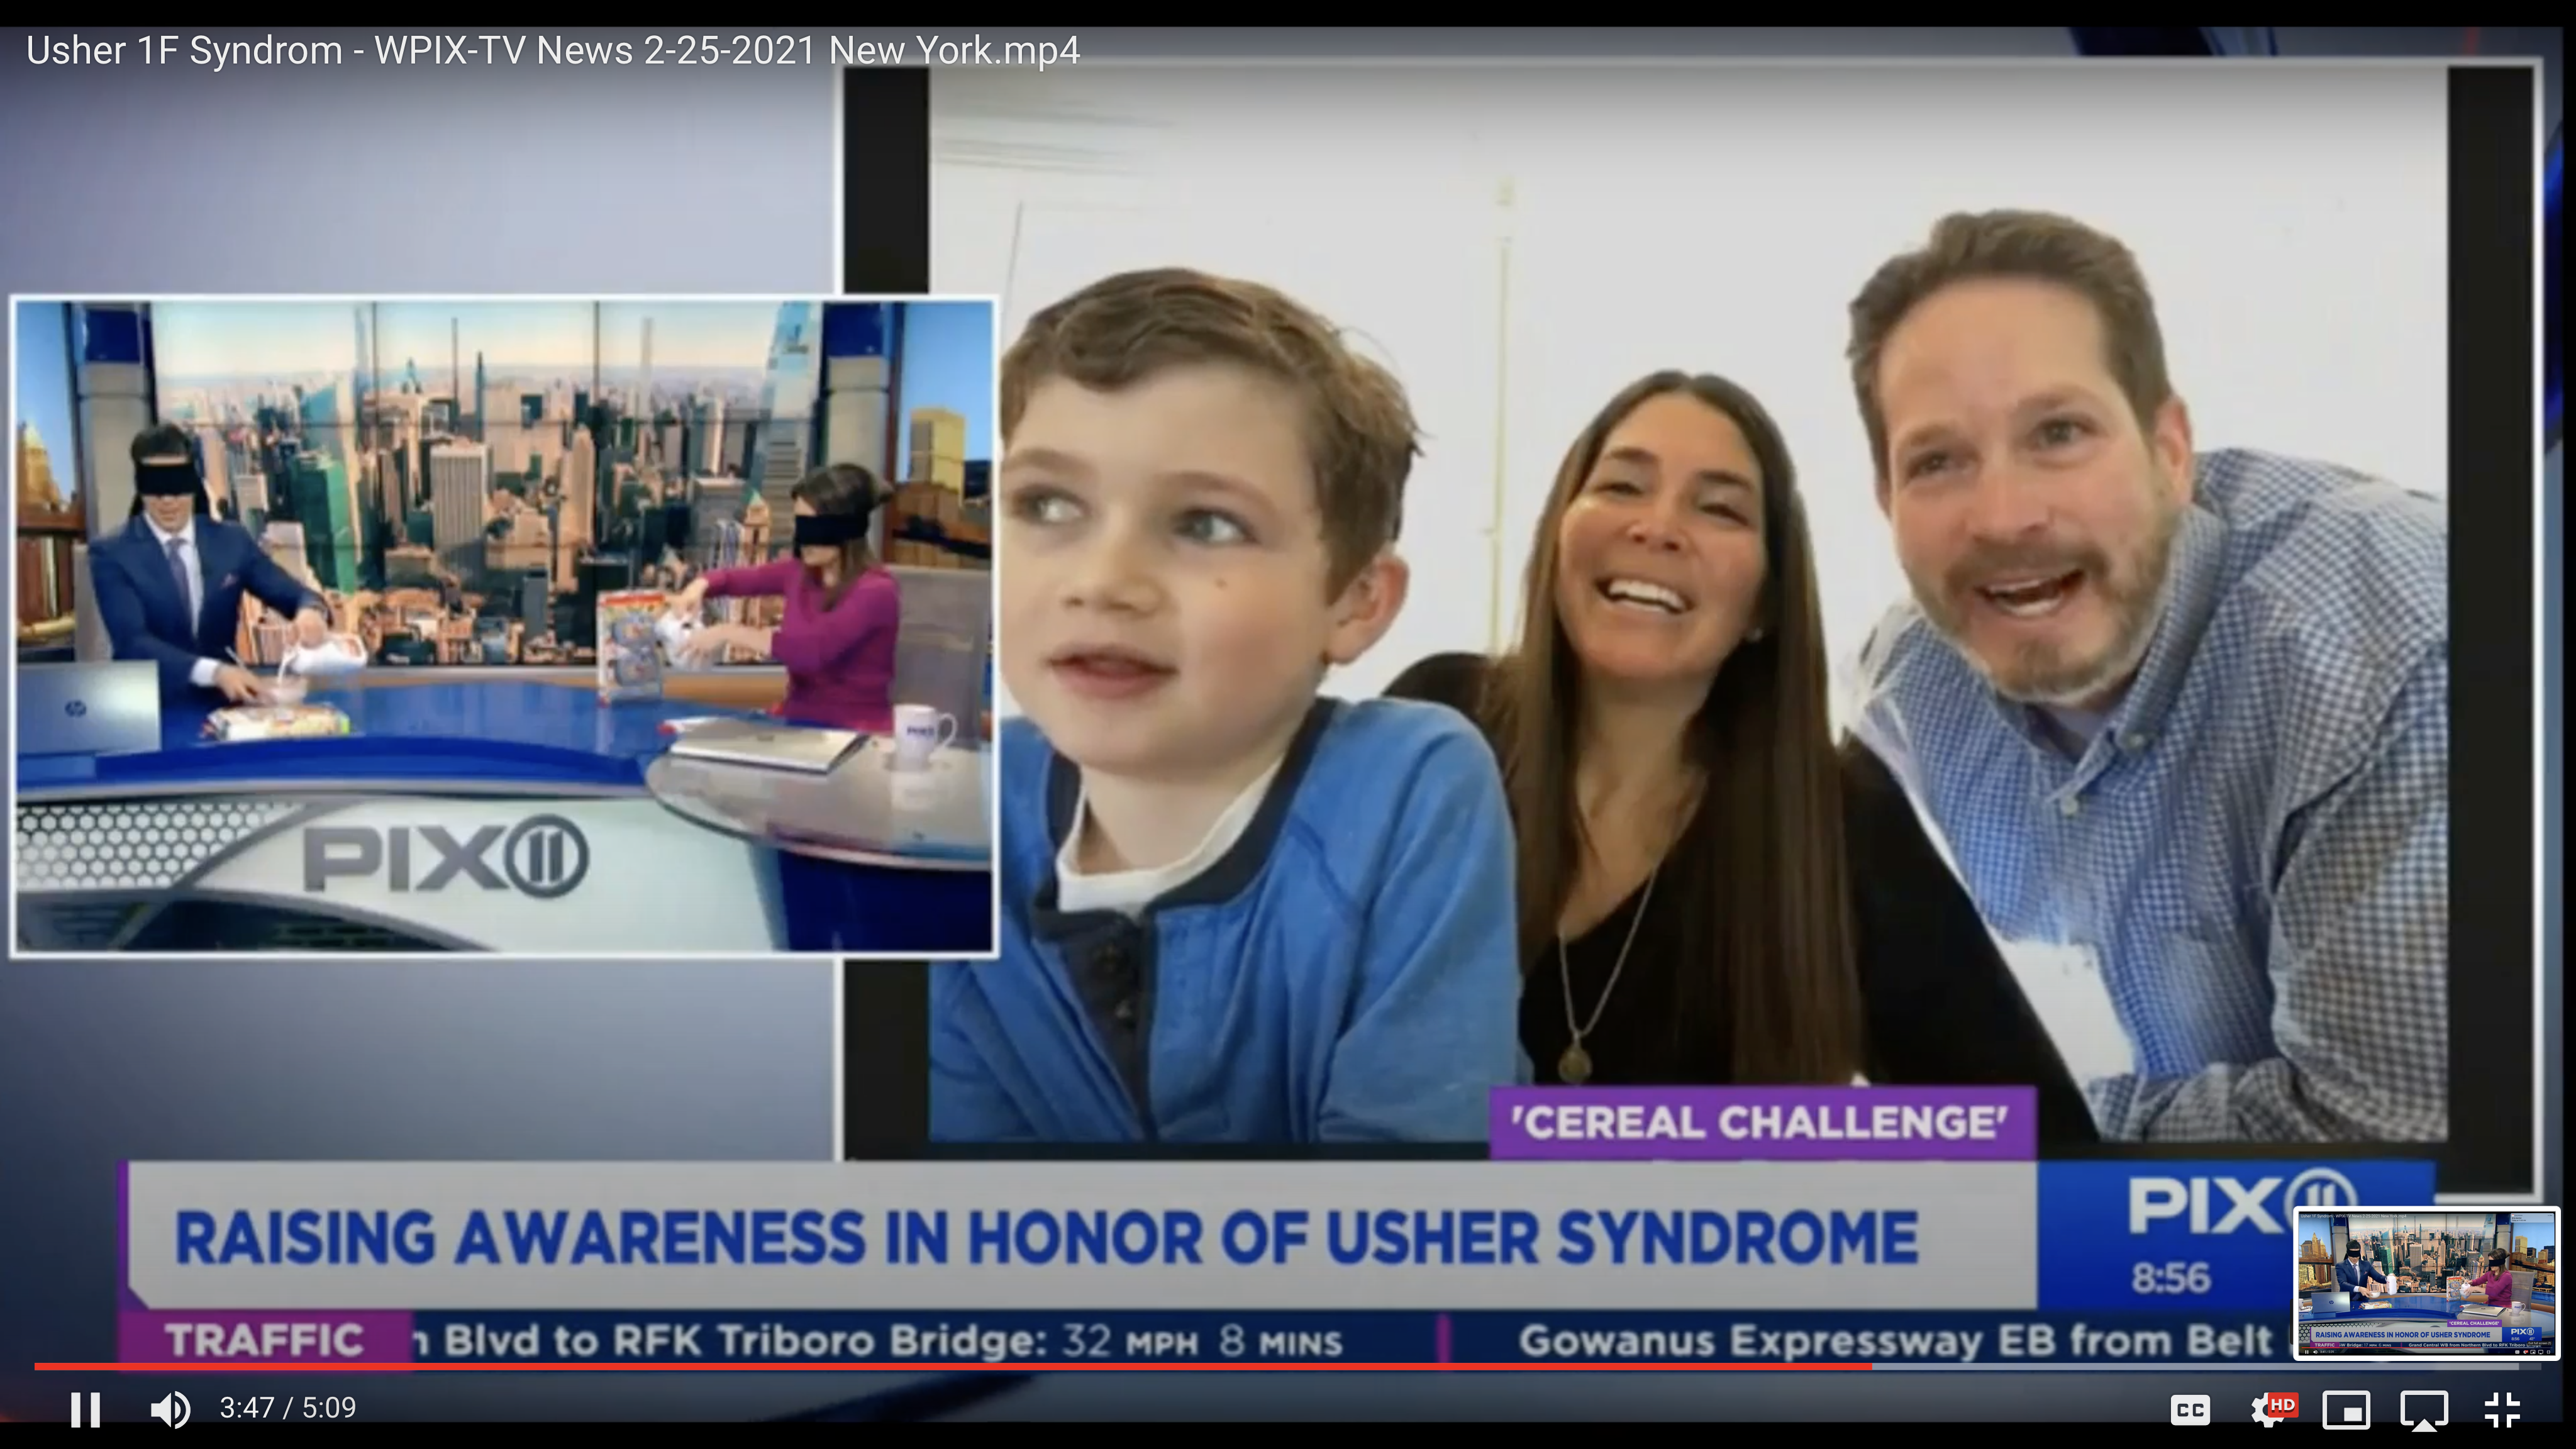 NY PIX 11 News Coverage of the Usher 1F Cereal Challenge